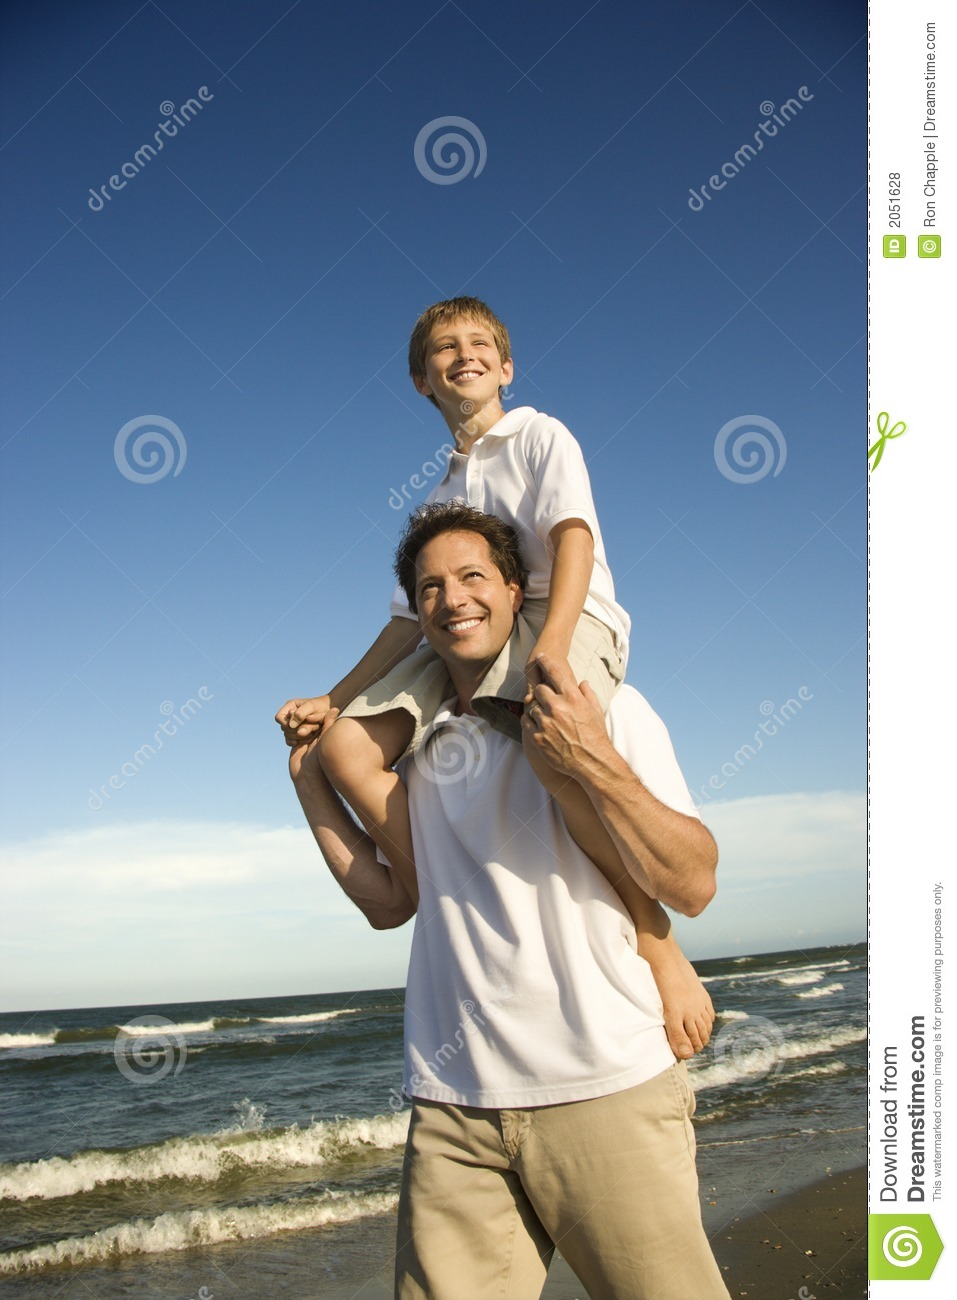 Dad Carrying Son Royalty Free Stock Photos Image 2051628